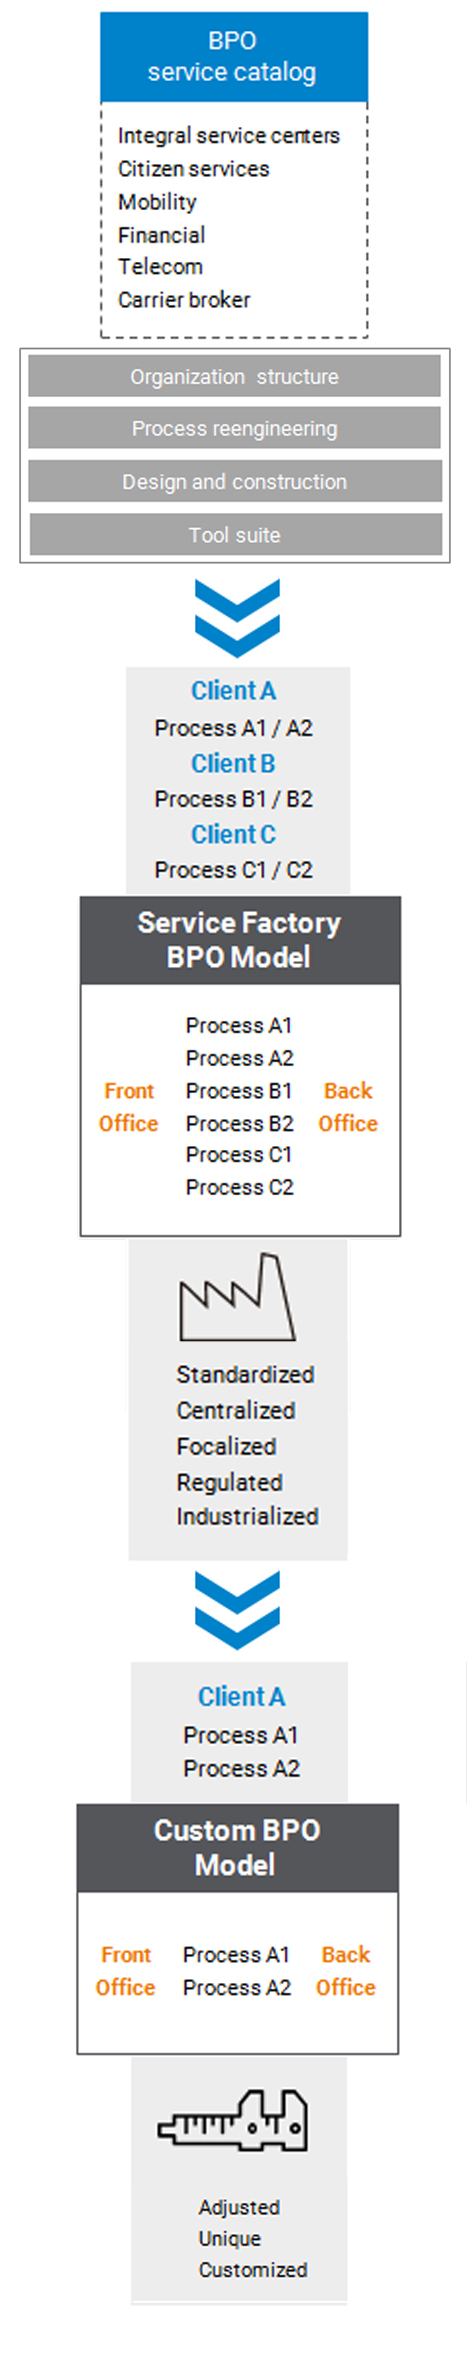 BPO - Business Processes